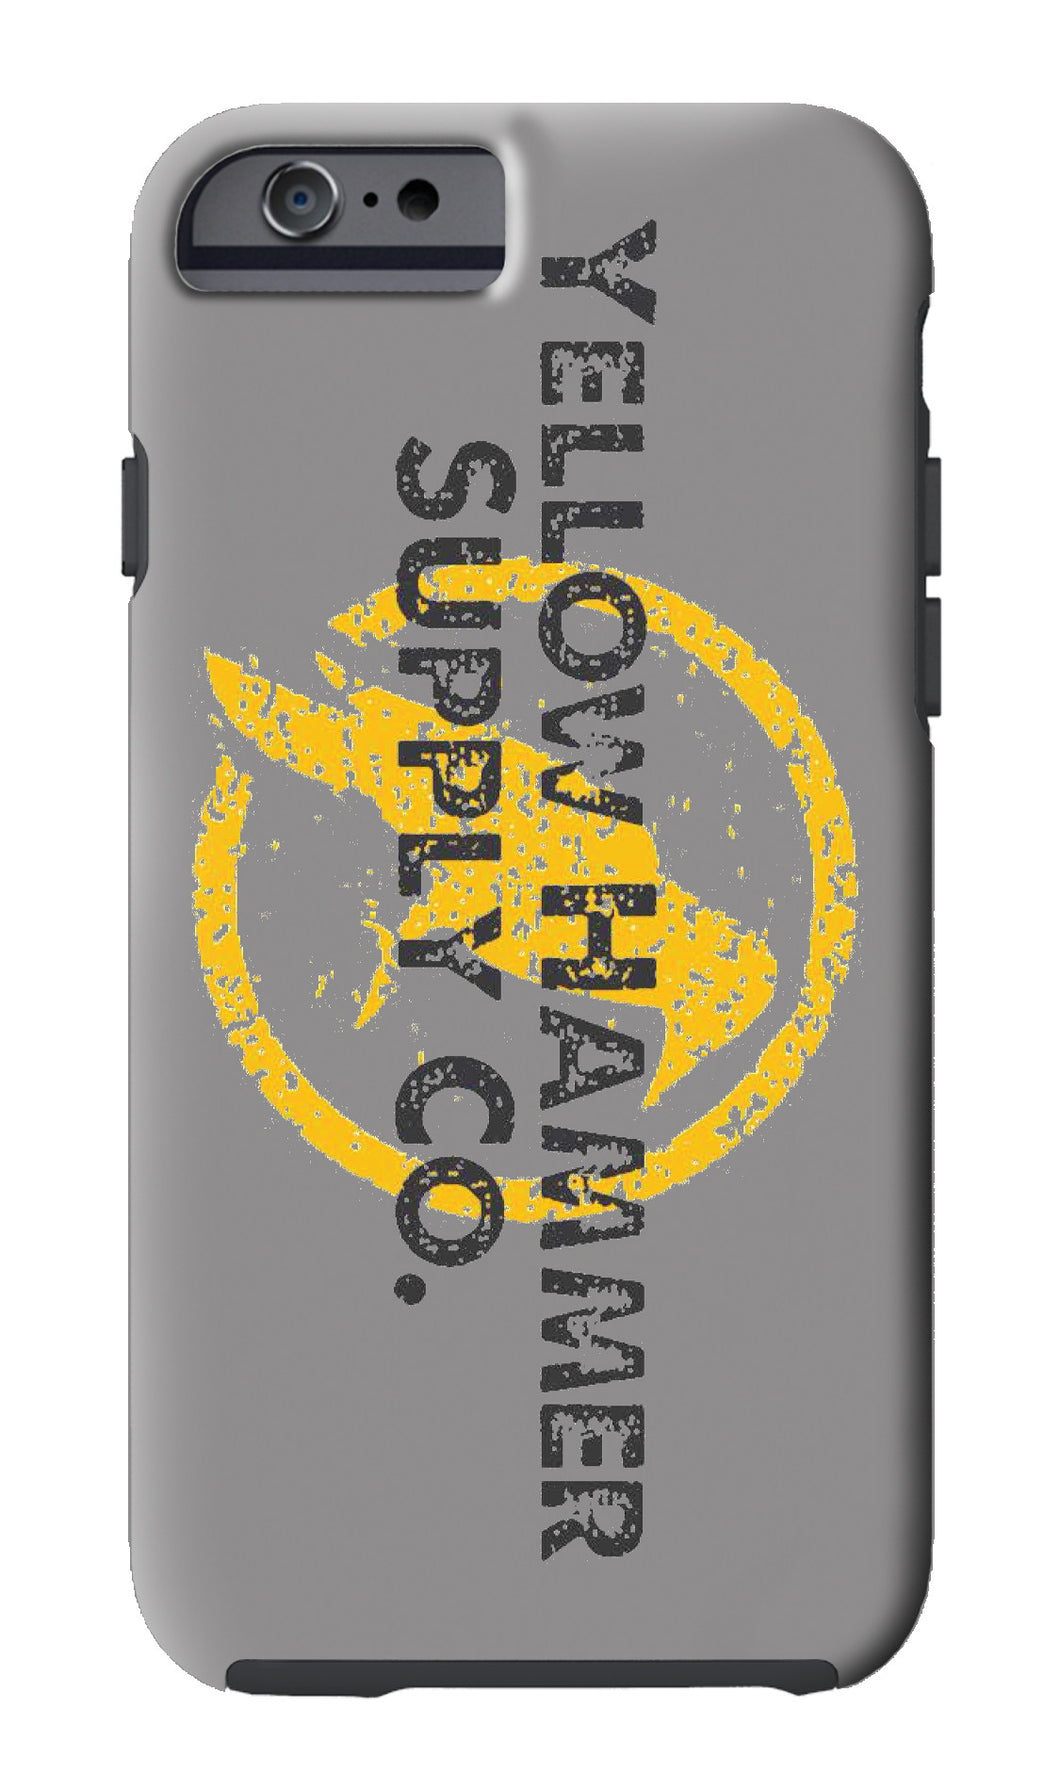 IPHONE CASE WITH YELLOW HAMMER SUPPLY CO. (White and Gray)